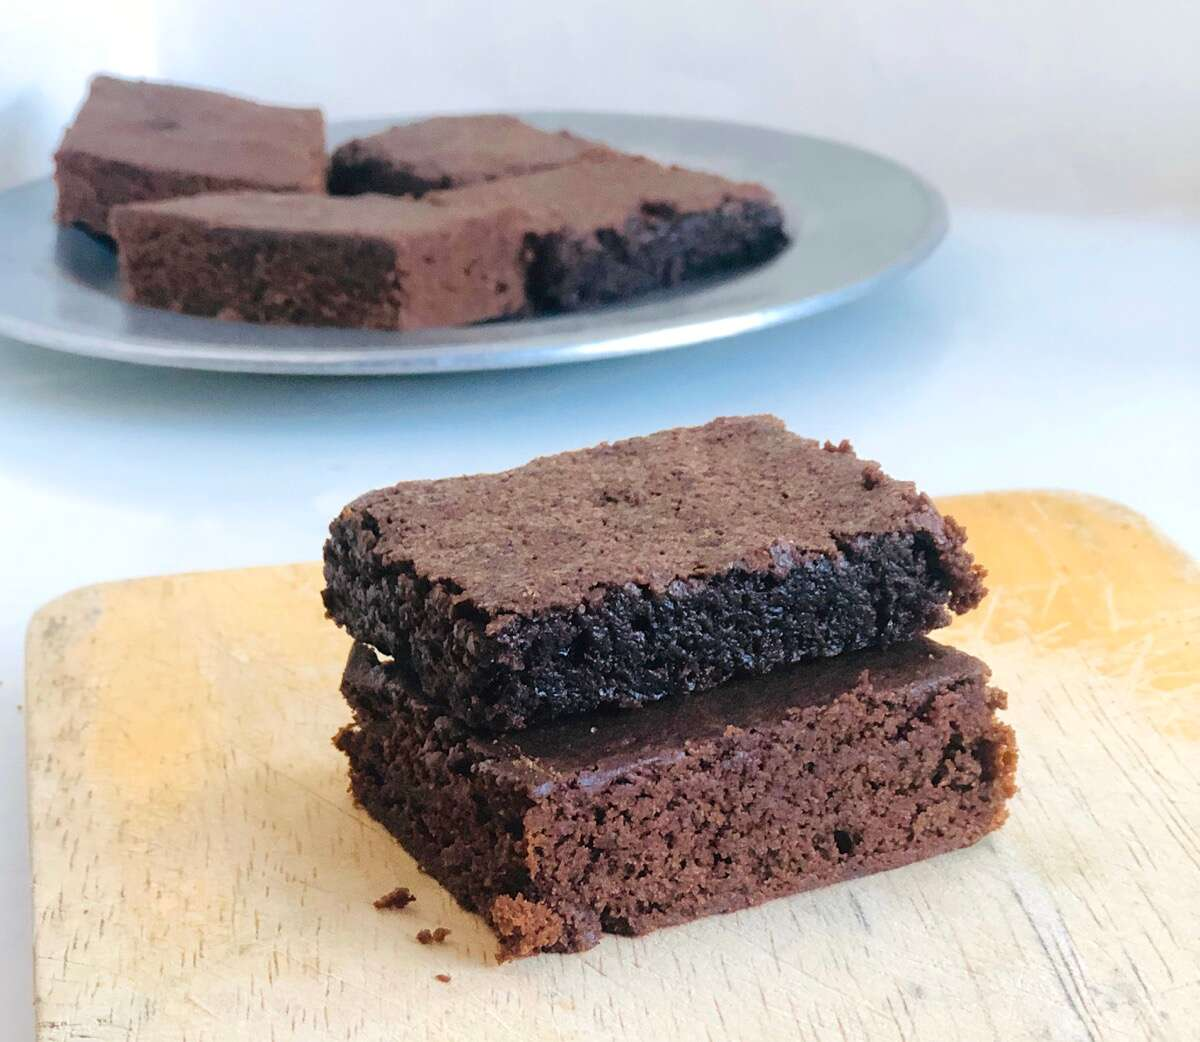 Two brownies, one made with Baking Sugar Alternative, one with regular cane sugar.